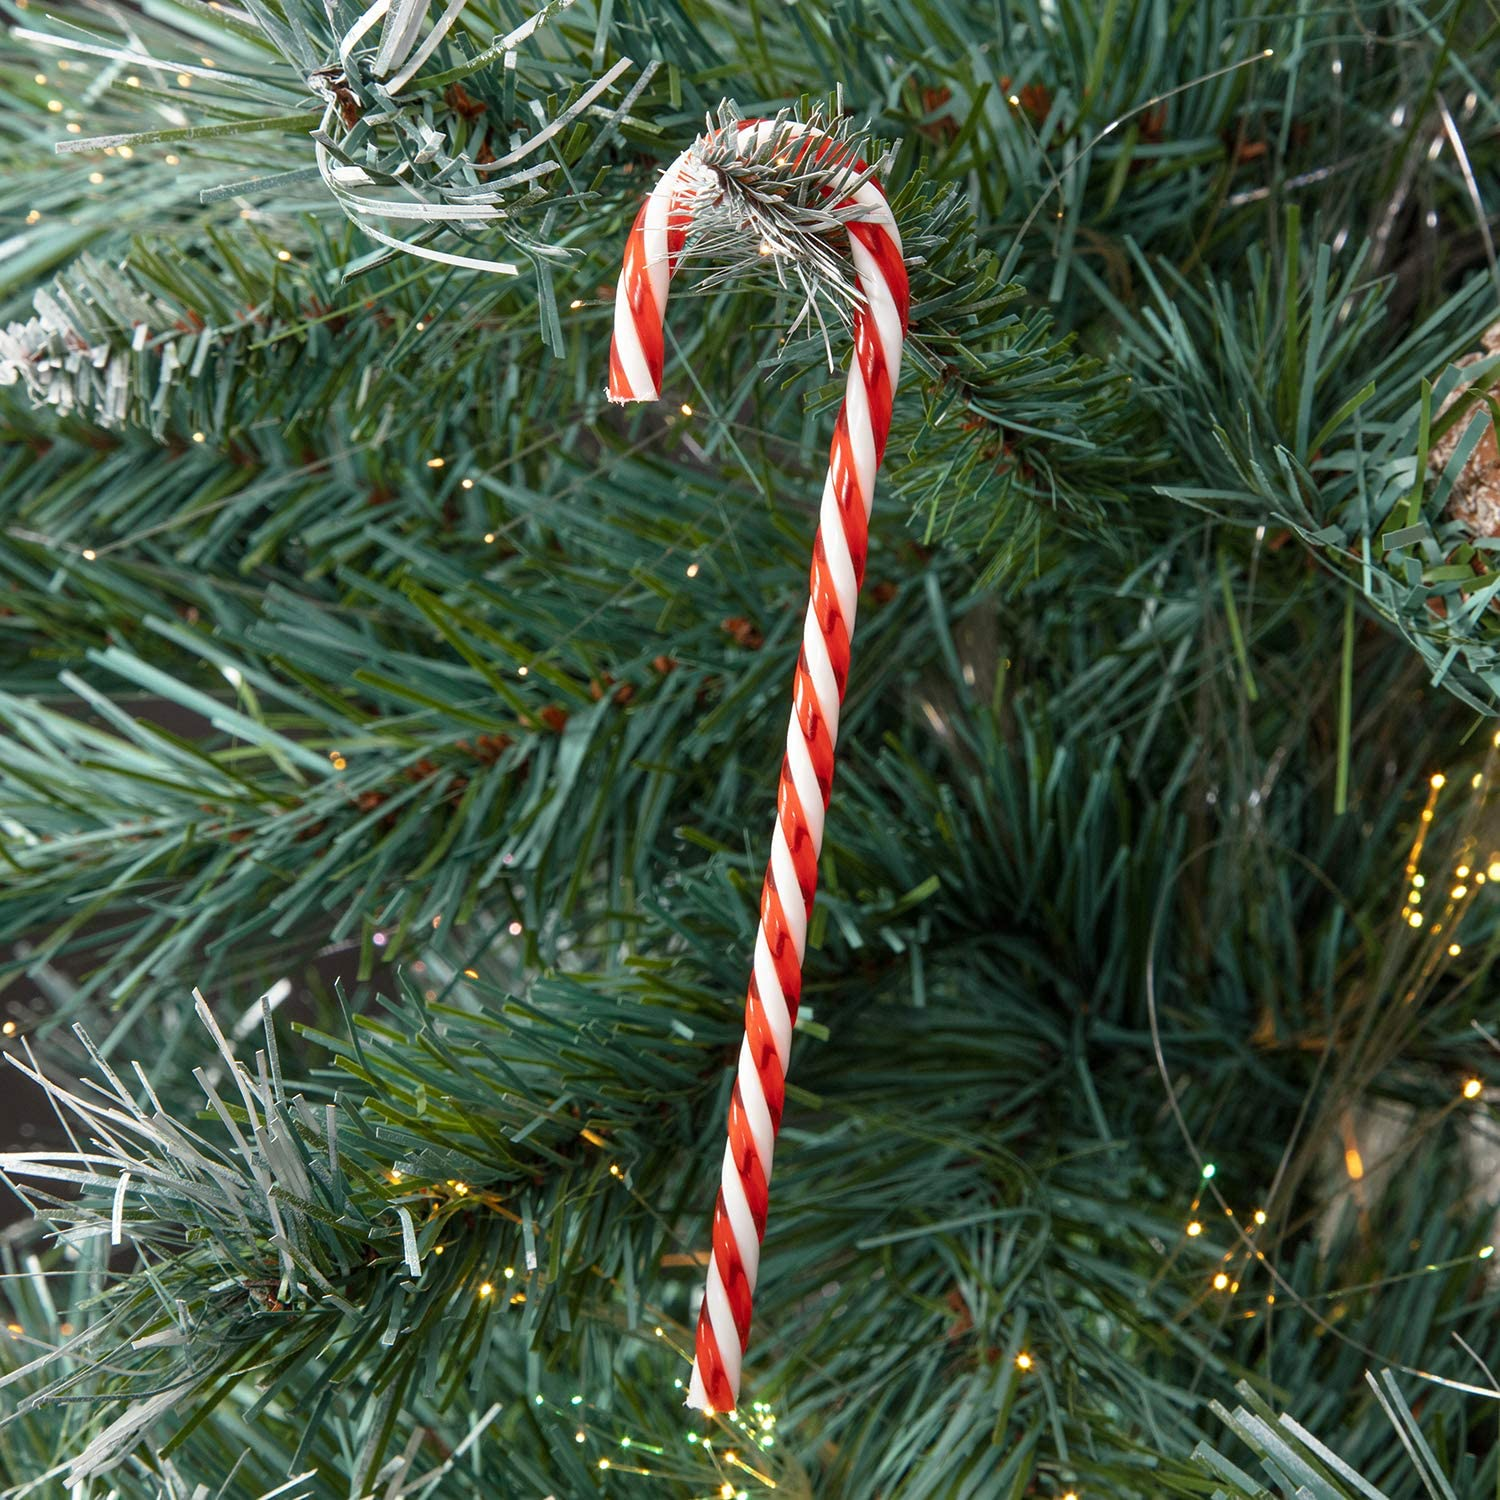 MERRY CHRISTMAS HOUSE 6 COUNT ORNAMENTS DECORATIONS PLASTIC CANDY CANE NEW